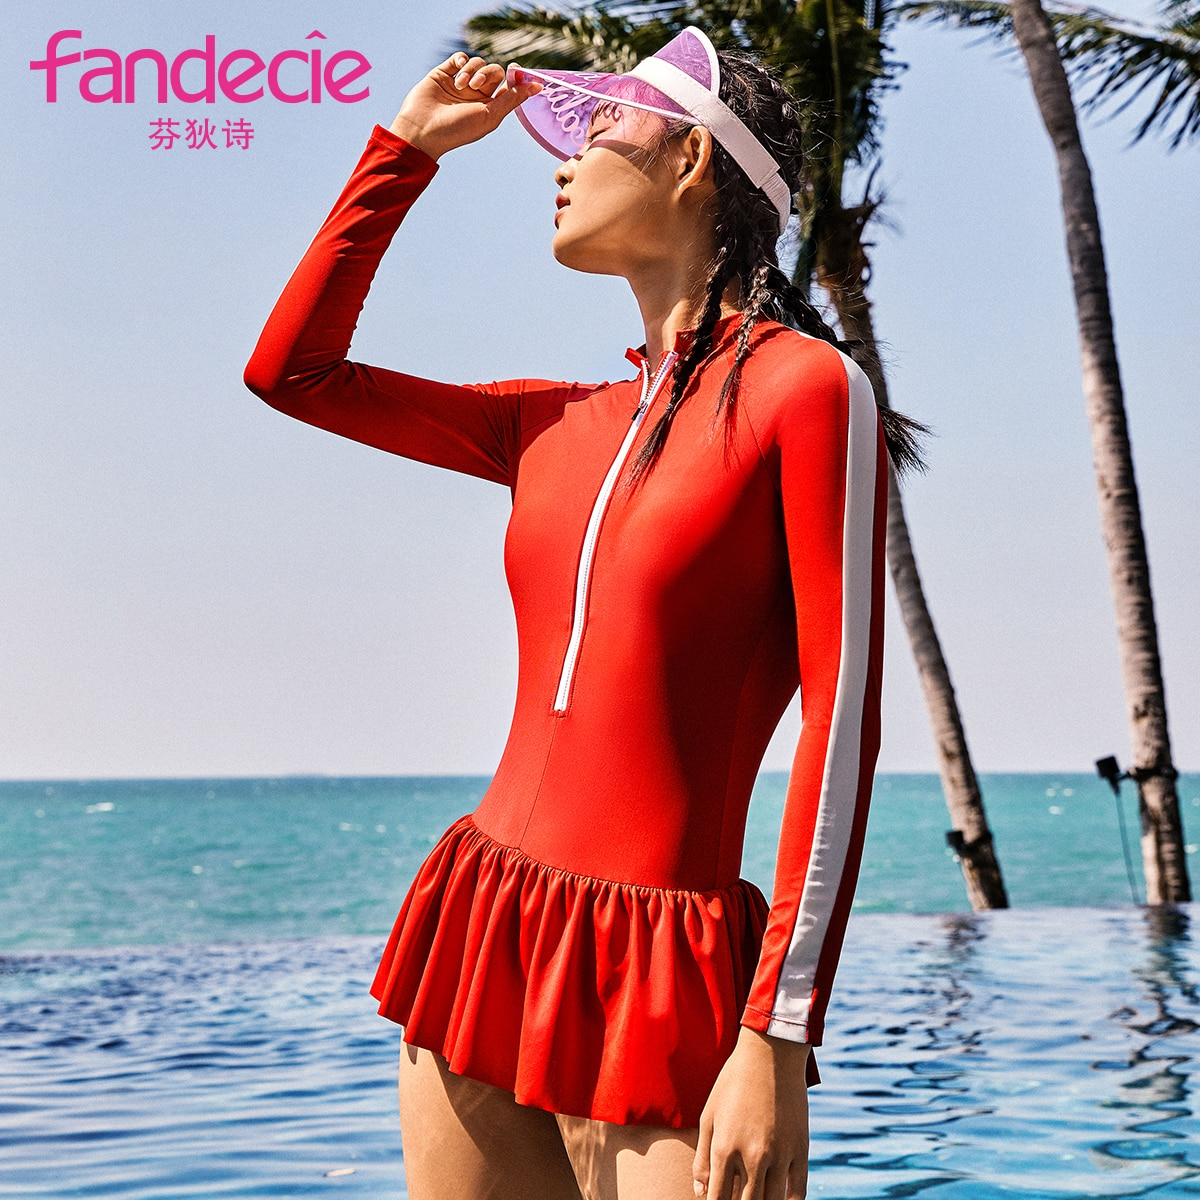 Women's Slimming Sports Diving Surfing Small Turtleneck Long Sleeve Sun Protection Dress Hot Spring Bathing Suit Fs00033